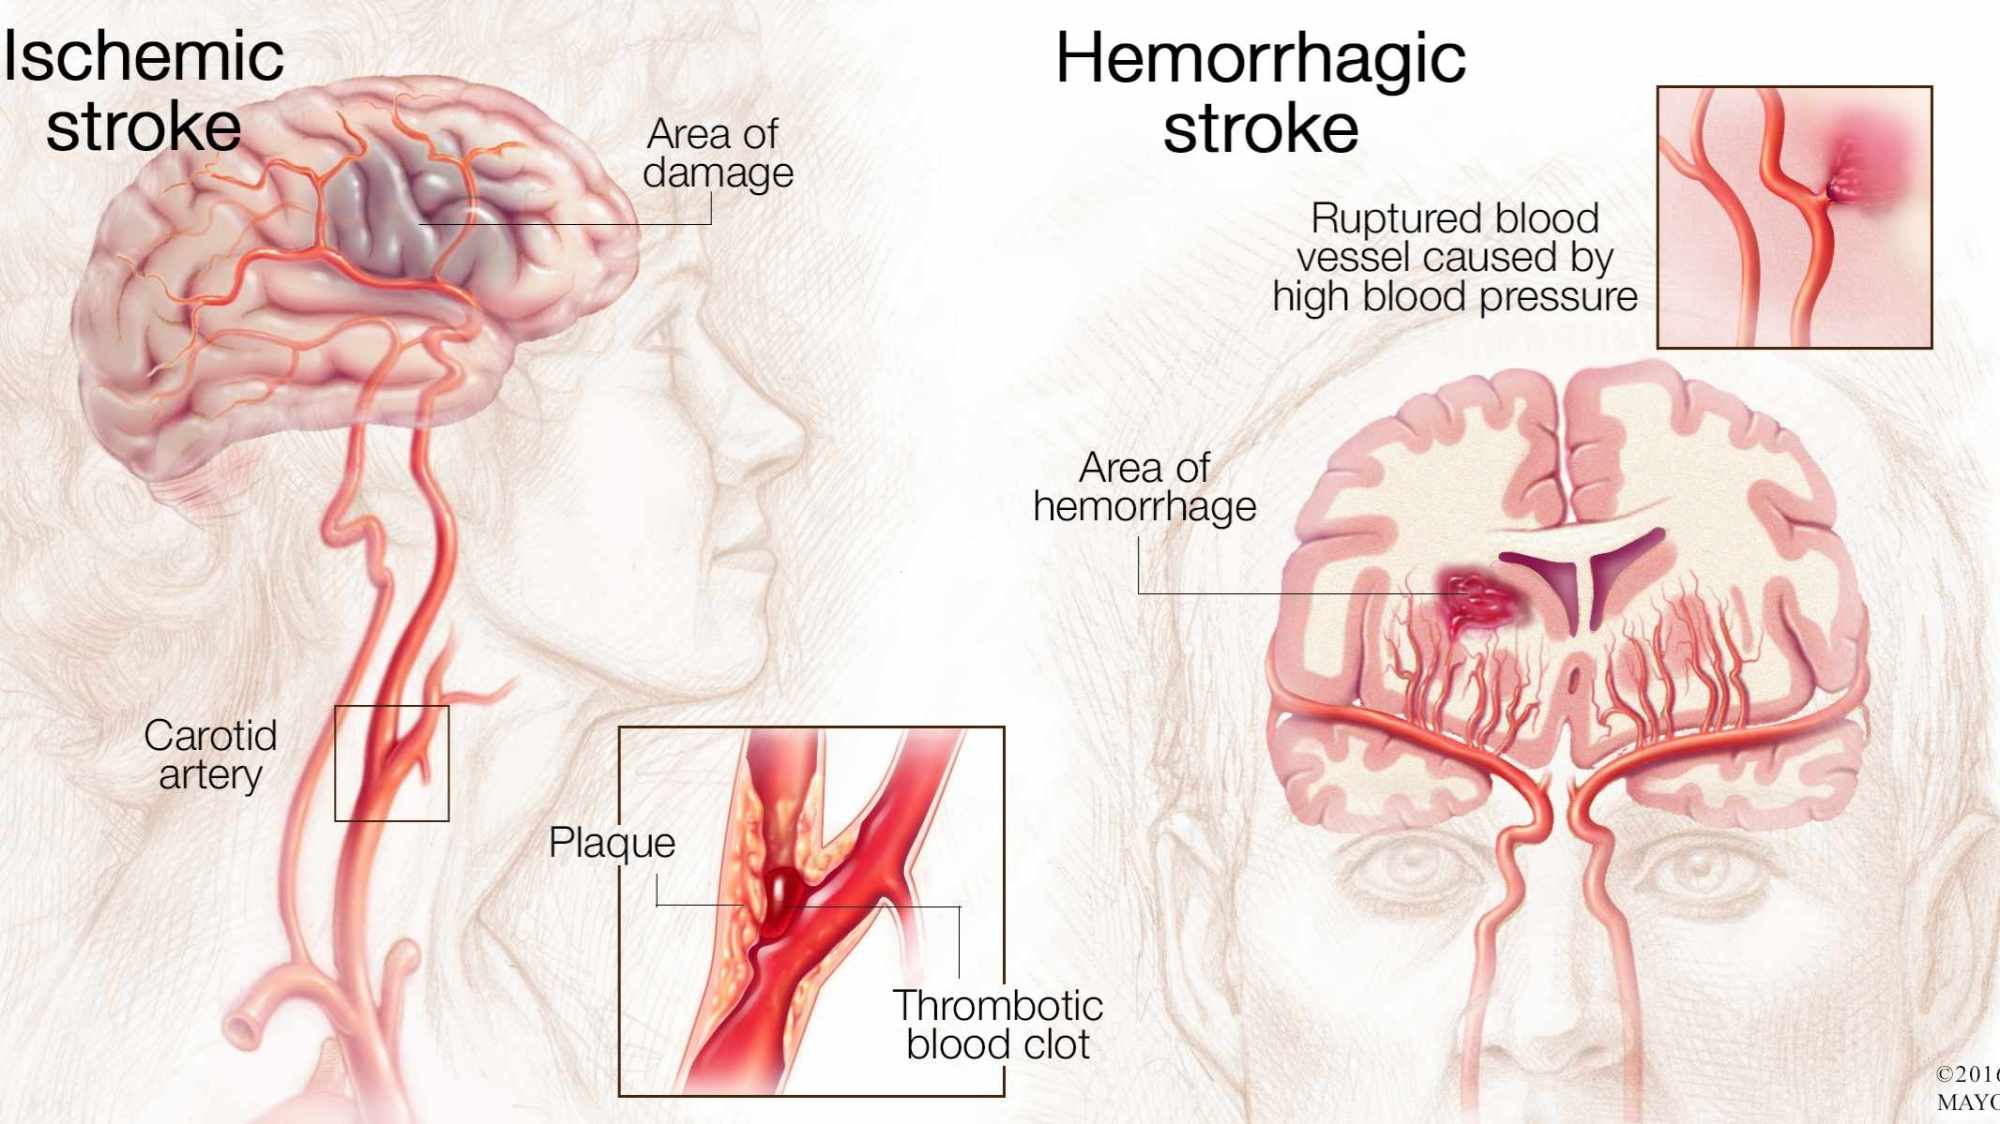 hight resolution of medical illustration of brain with ischemic stroke and hemorrhagic stroke